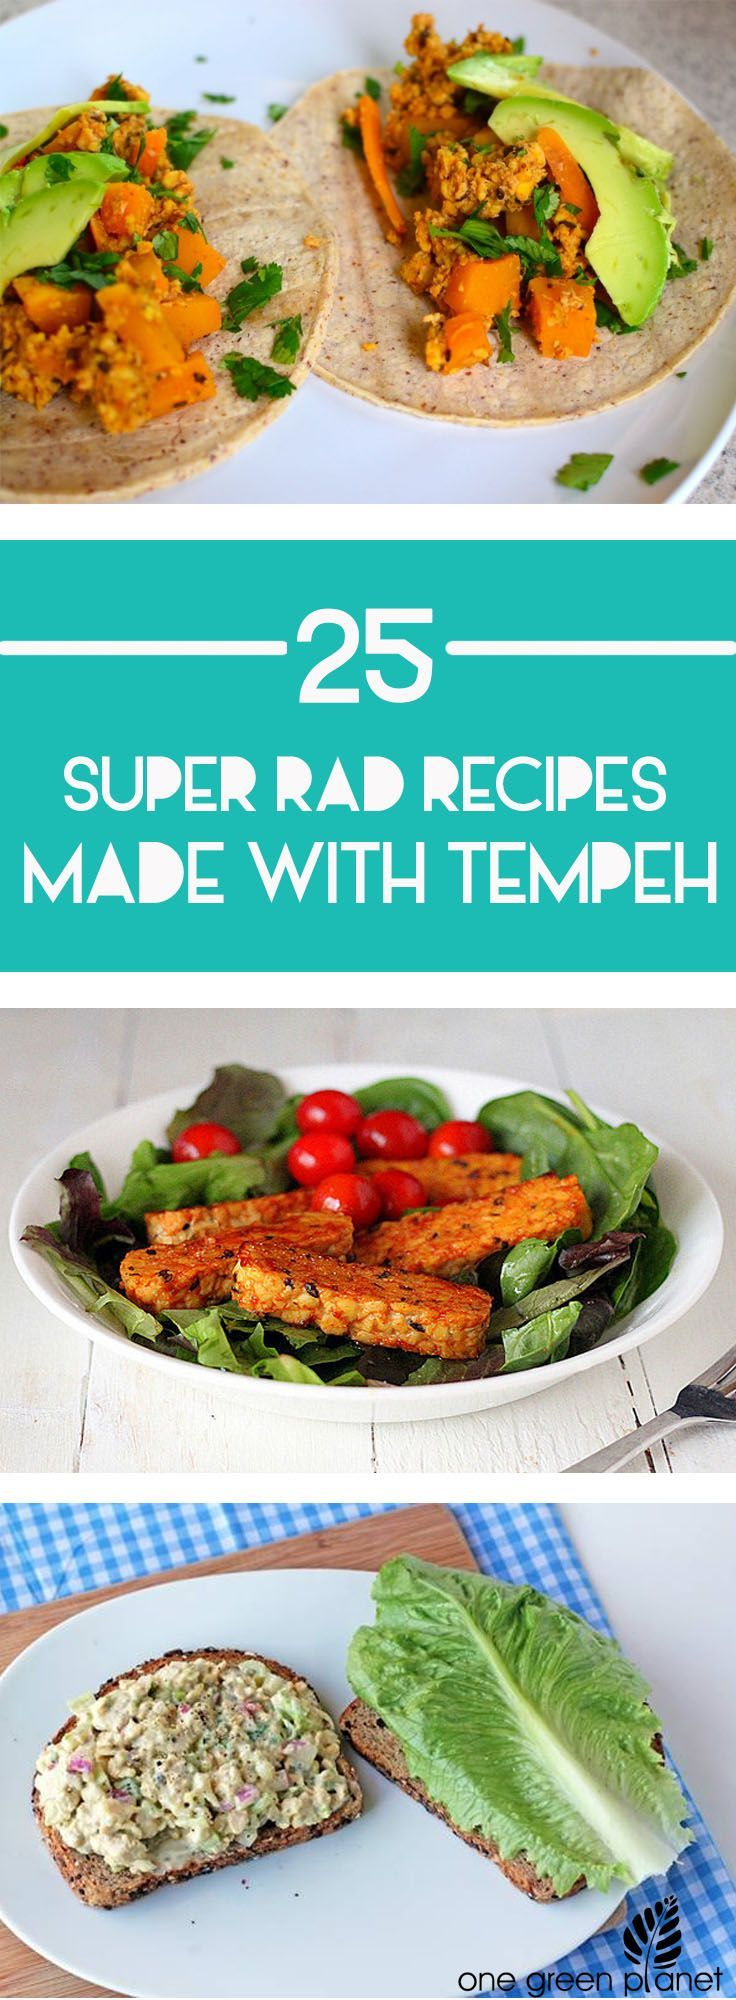 Veganomicon tempeh recipes easy